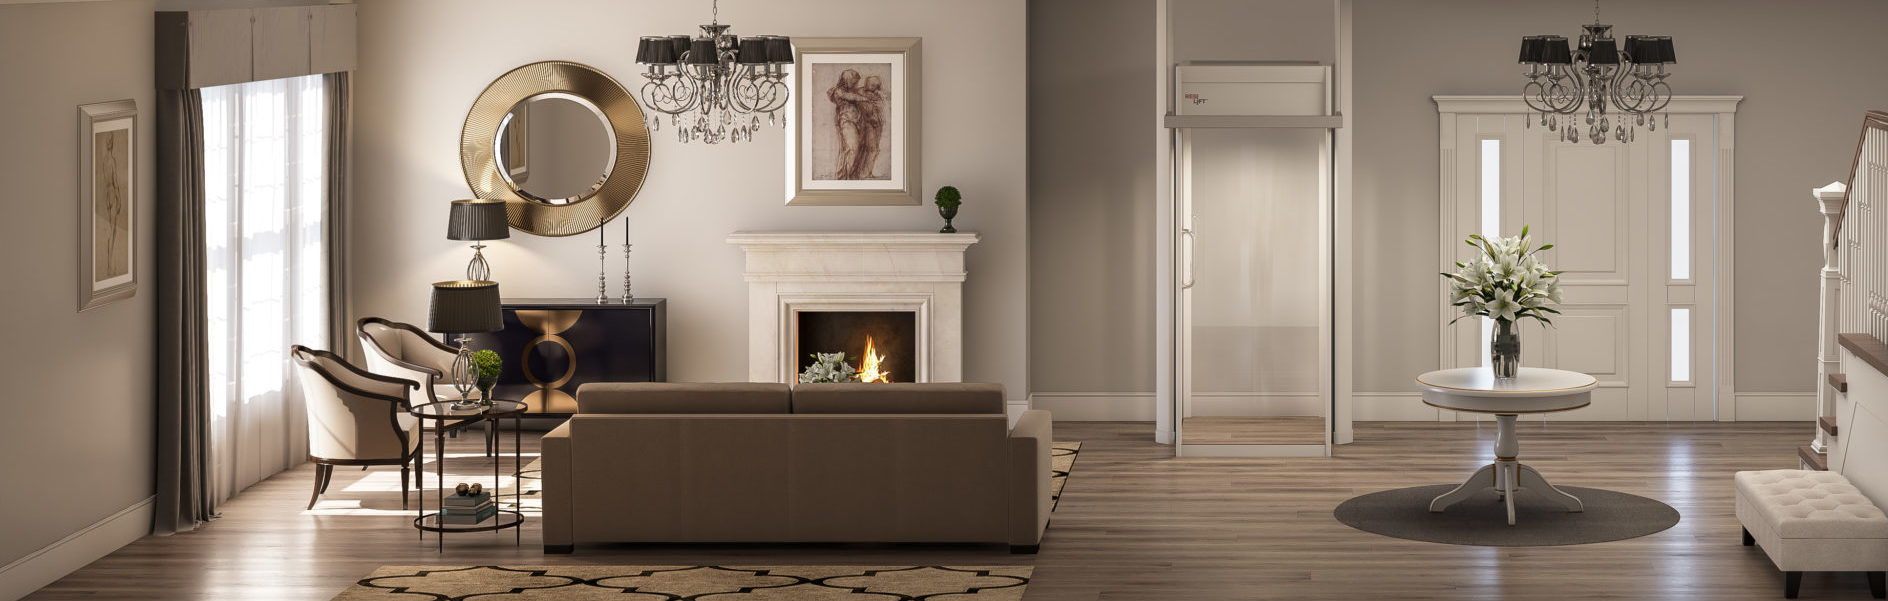 Miracle Max fireplace lower level